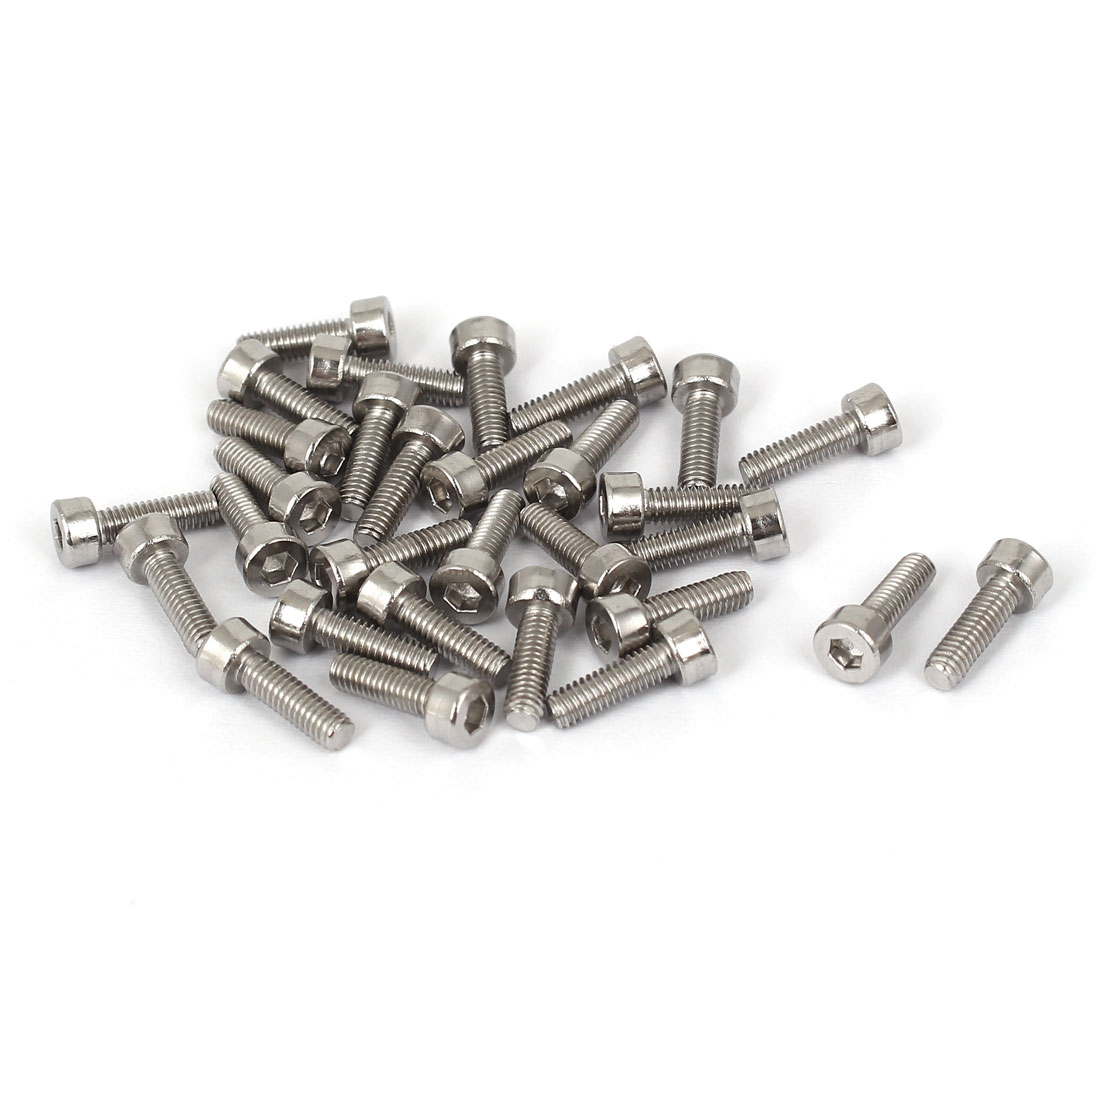 30 Pcs M2.5x8mm 316 Stainless Steel Metric Hex Socket Cap Screws 10.5mm Length